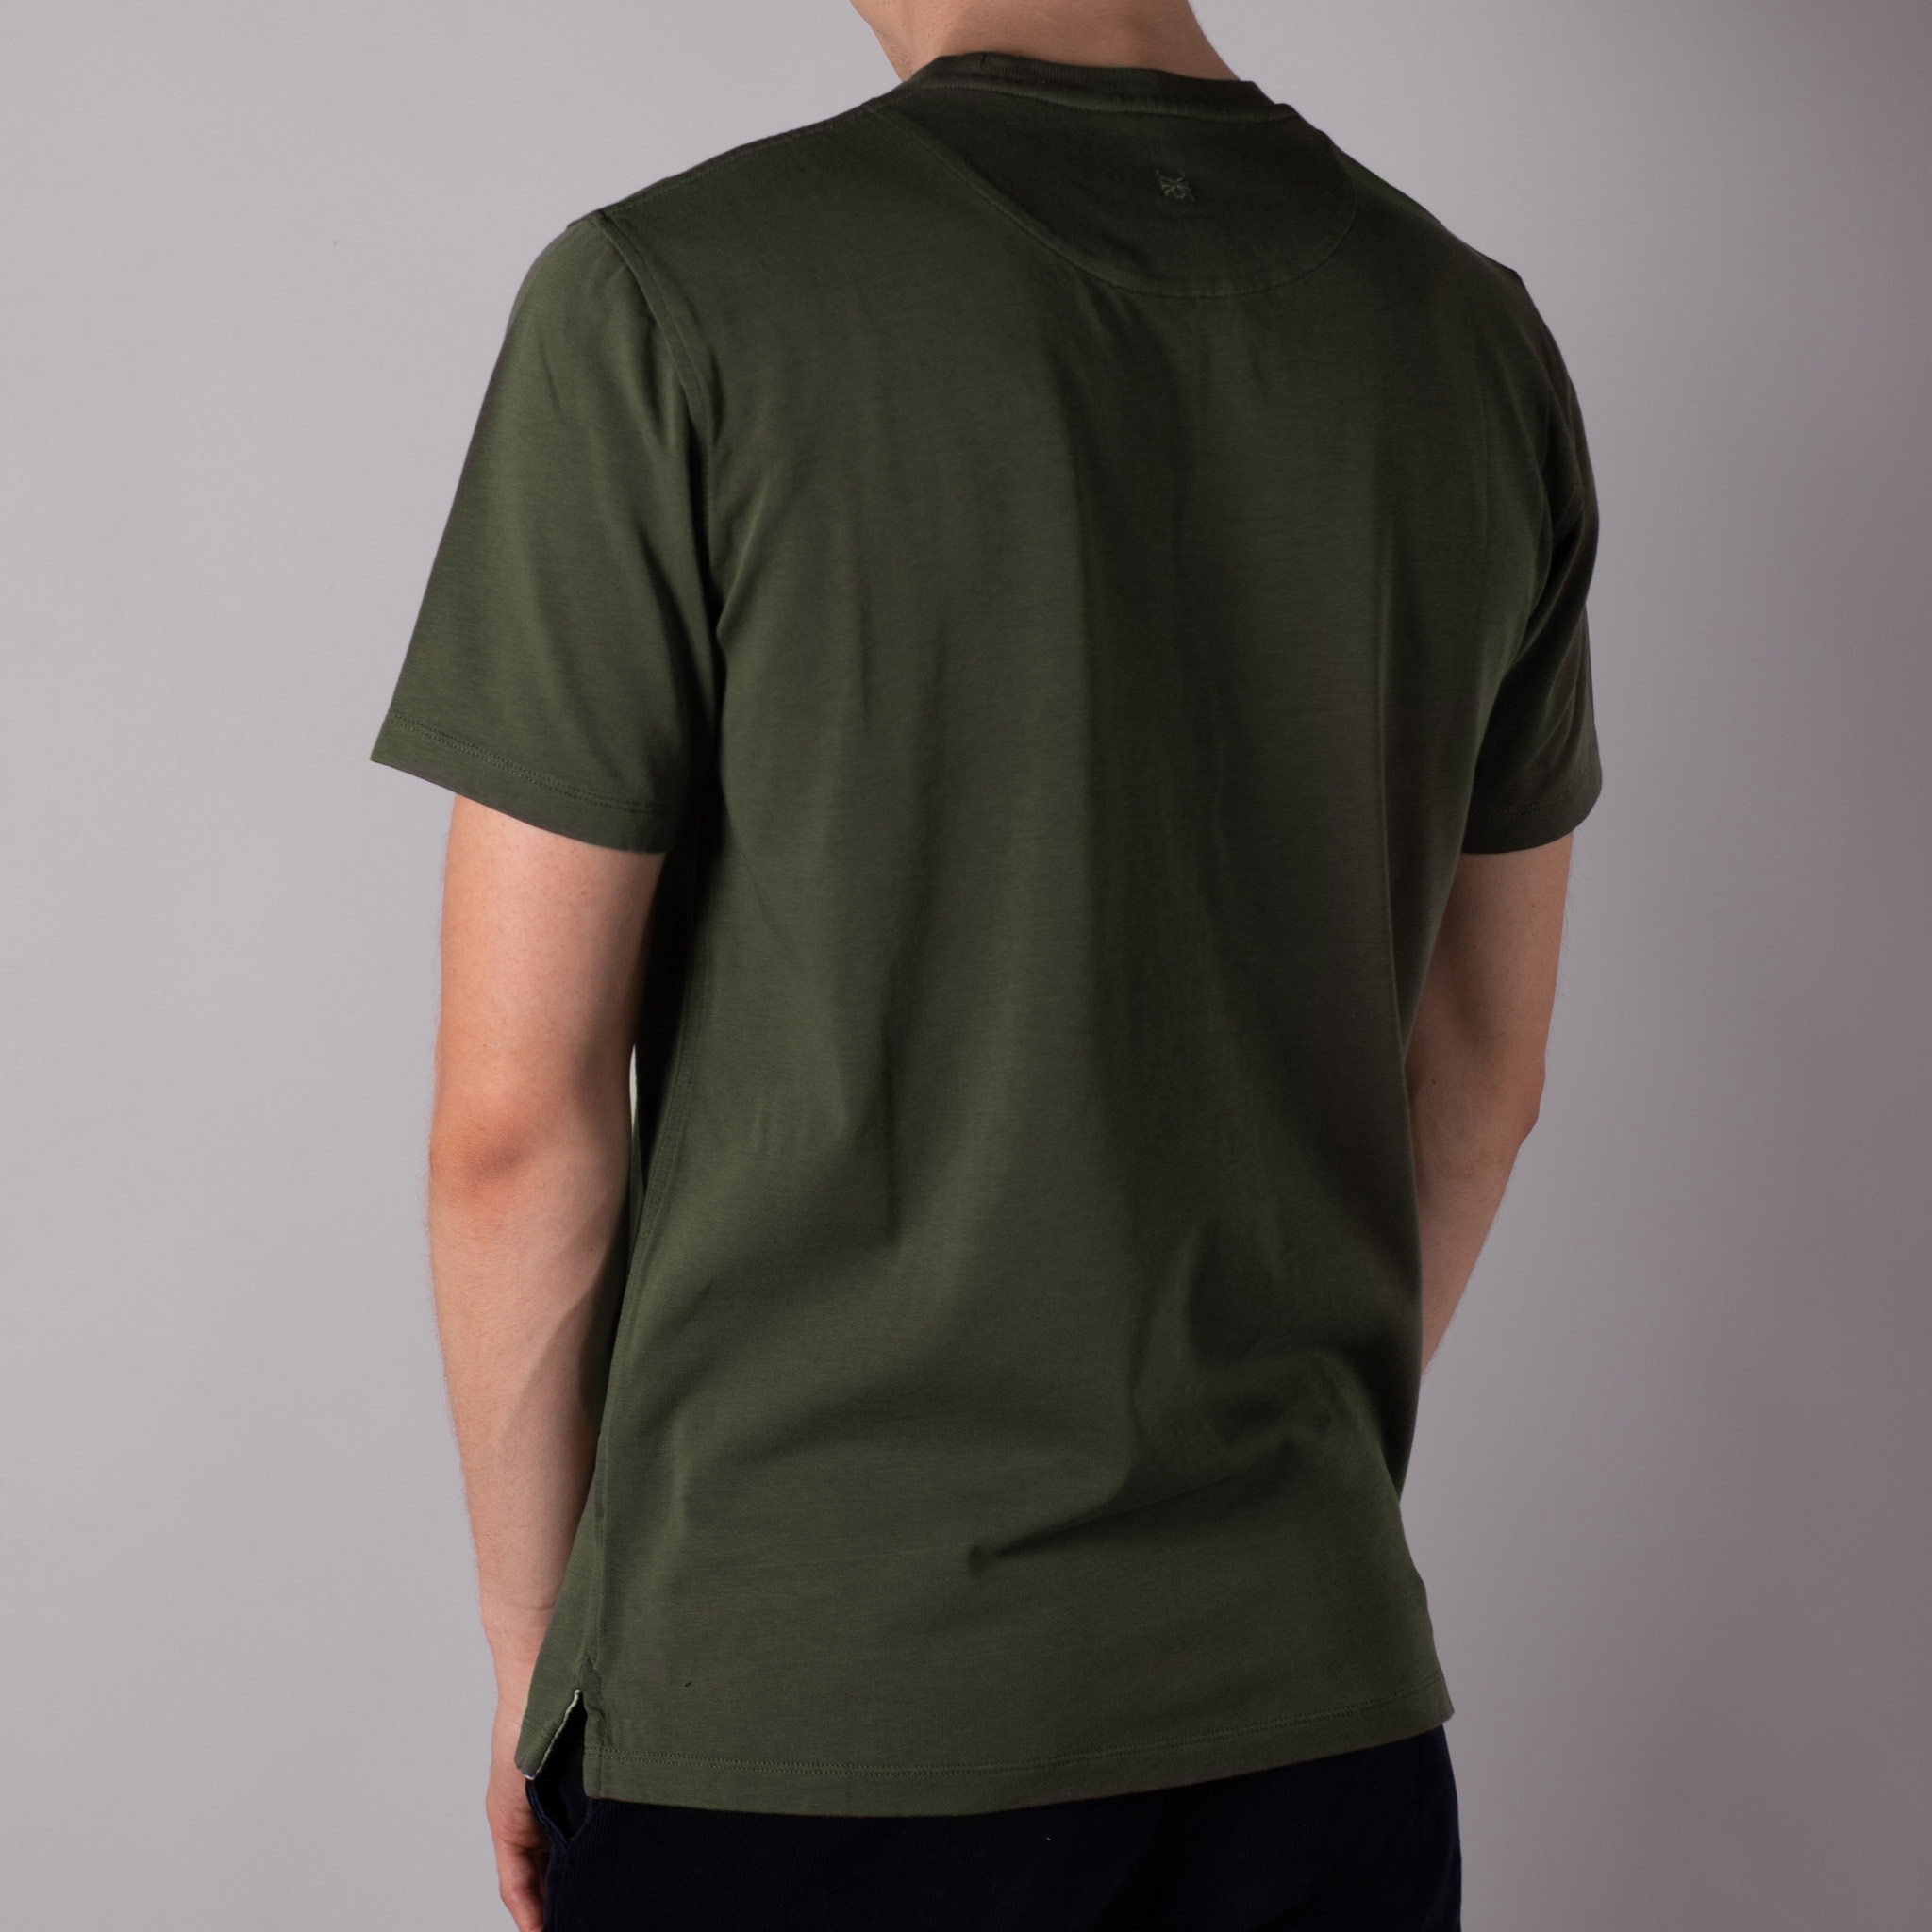 T-SHIRT-02-·-03-VERDE-The-Seëlk 2